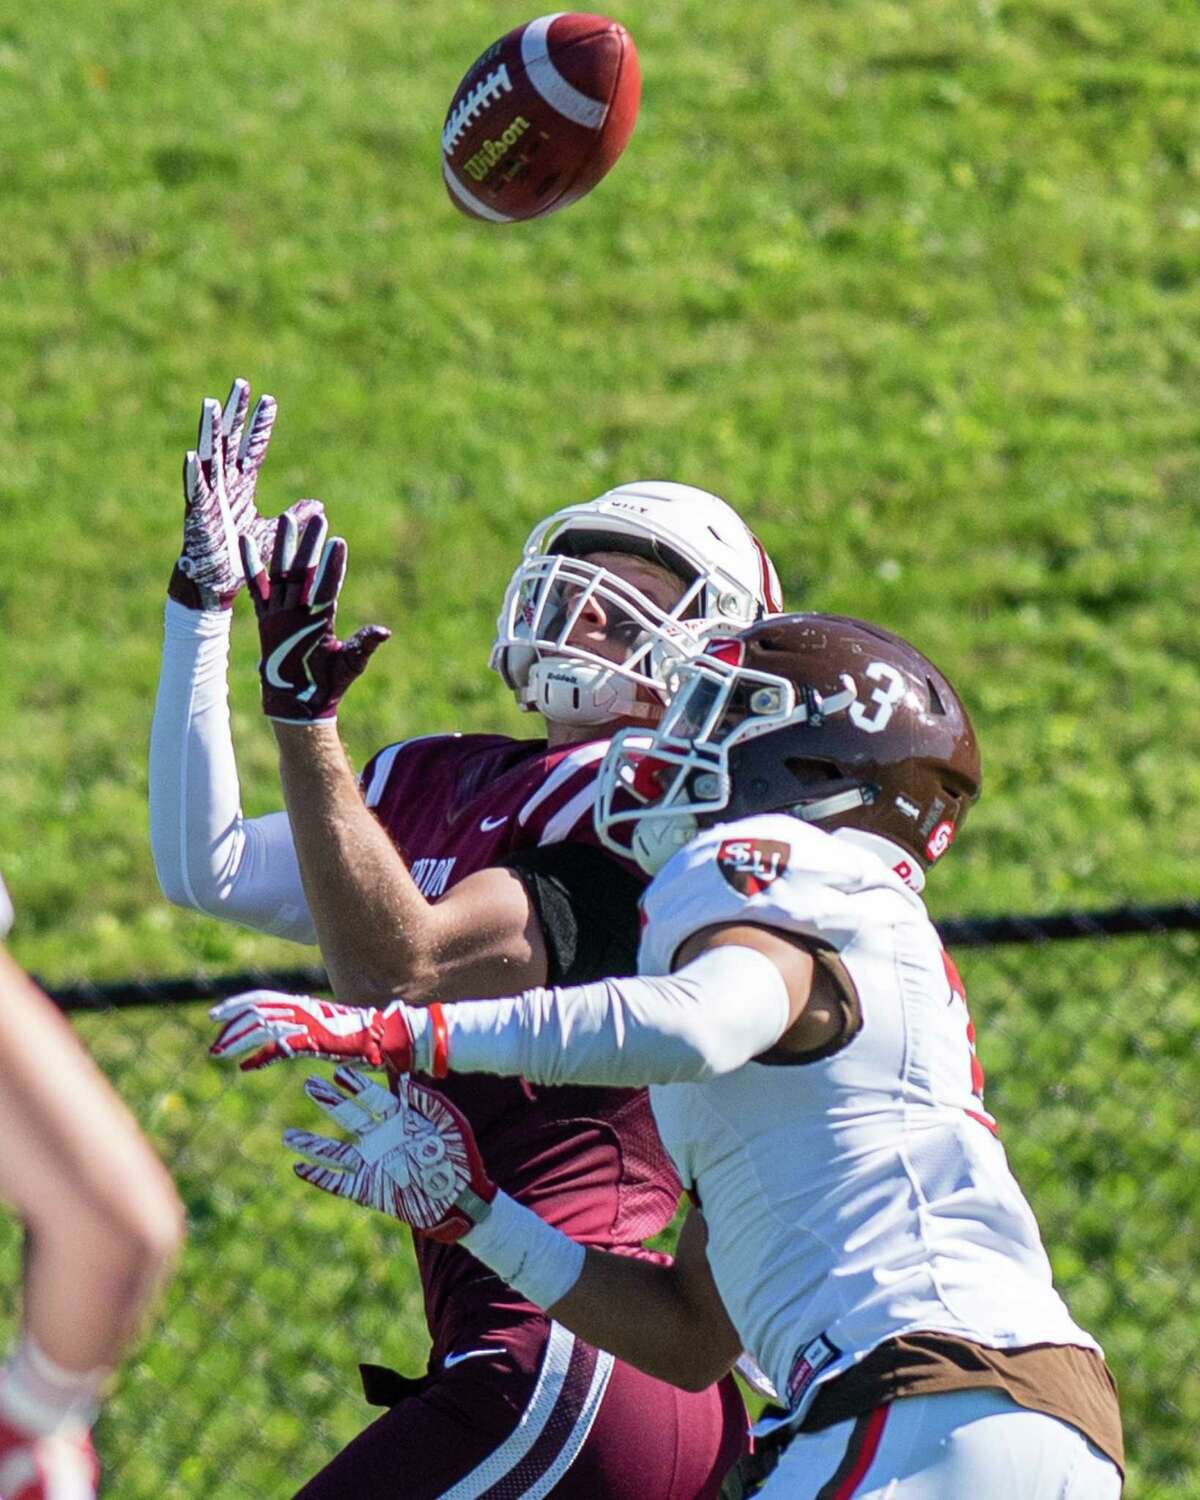 Union College receiver Will Sirmon makes a catch in front of St. Lawrence defensive back Rahmod Johnson during a game at Union College on Saturday, Oct. 19, 2019 (Jim Franco/Special to the Times Union.)